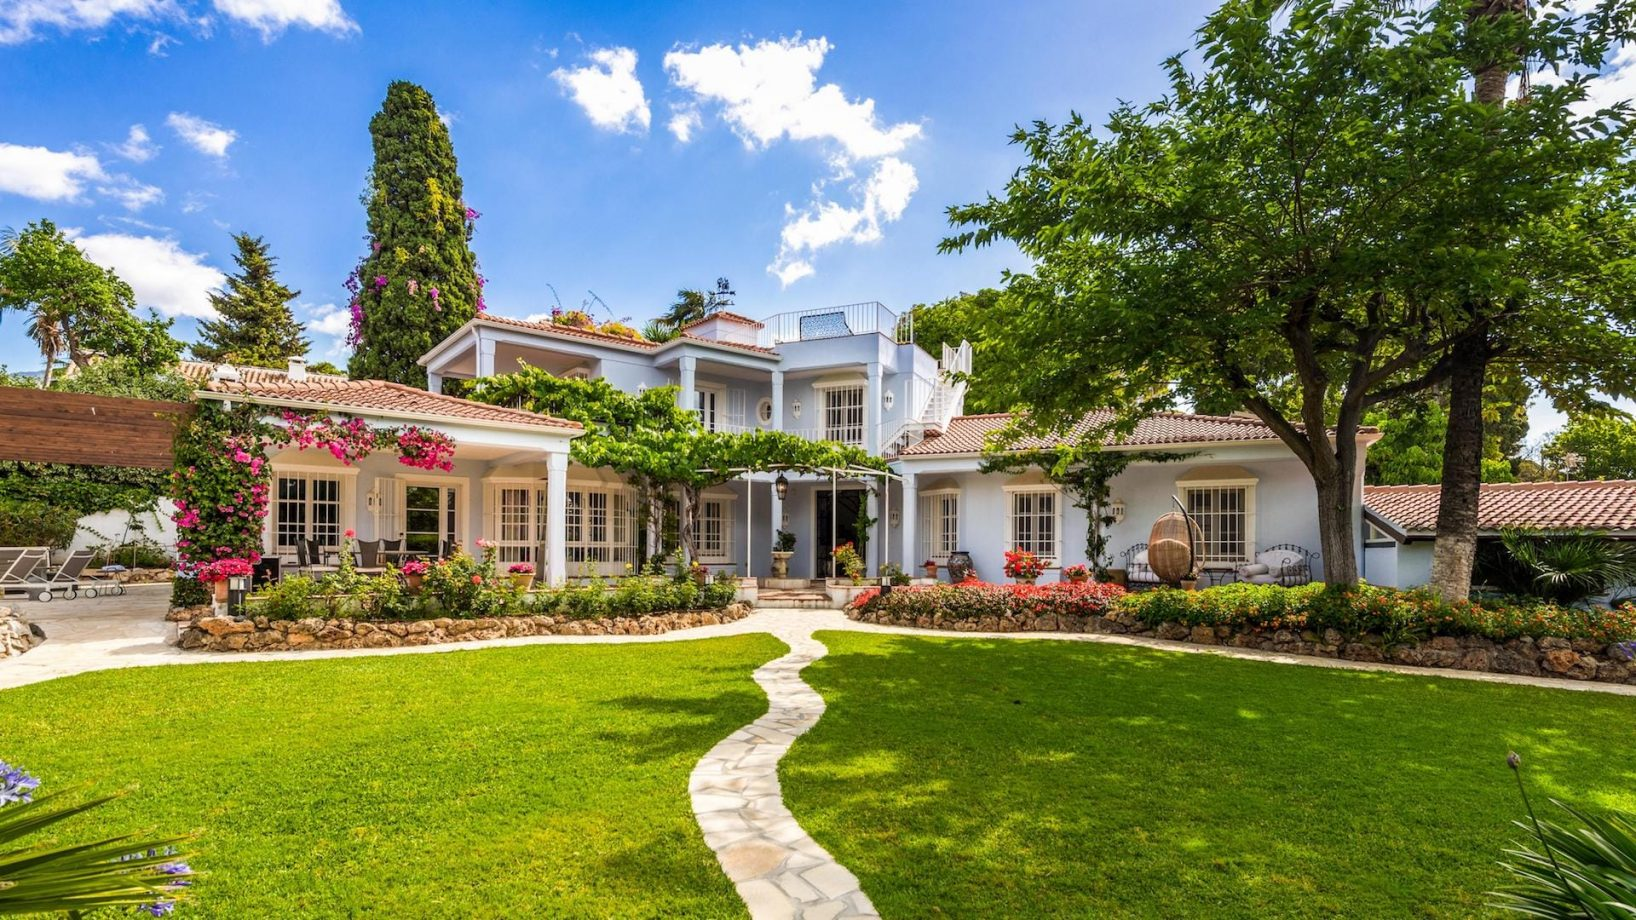 Property in Marbella: The difference between asking and selling price